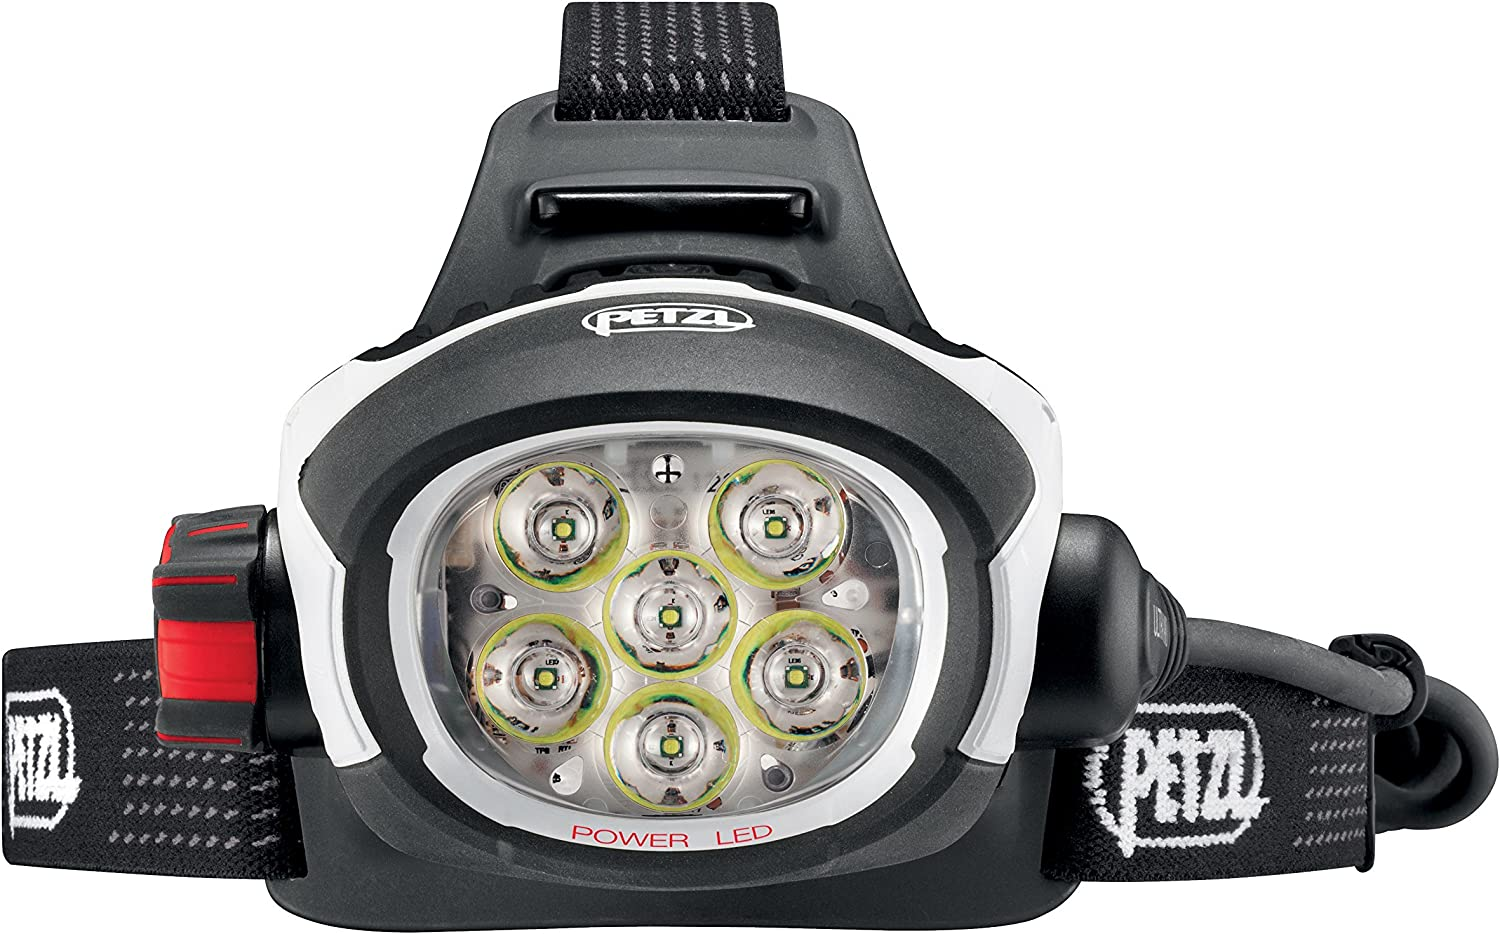 This is an image of the PETZL headlamp with lens facing front with six LED bulbs as seen.